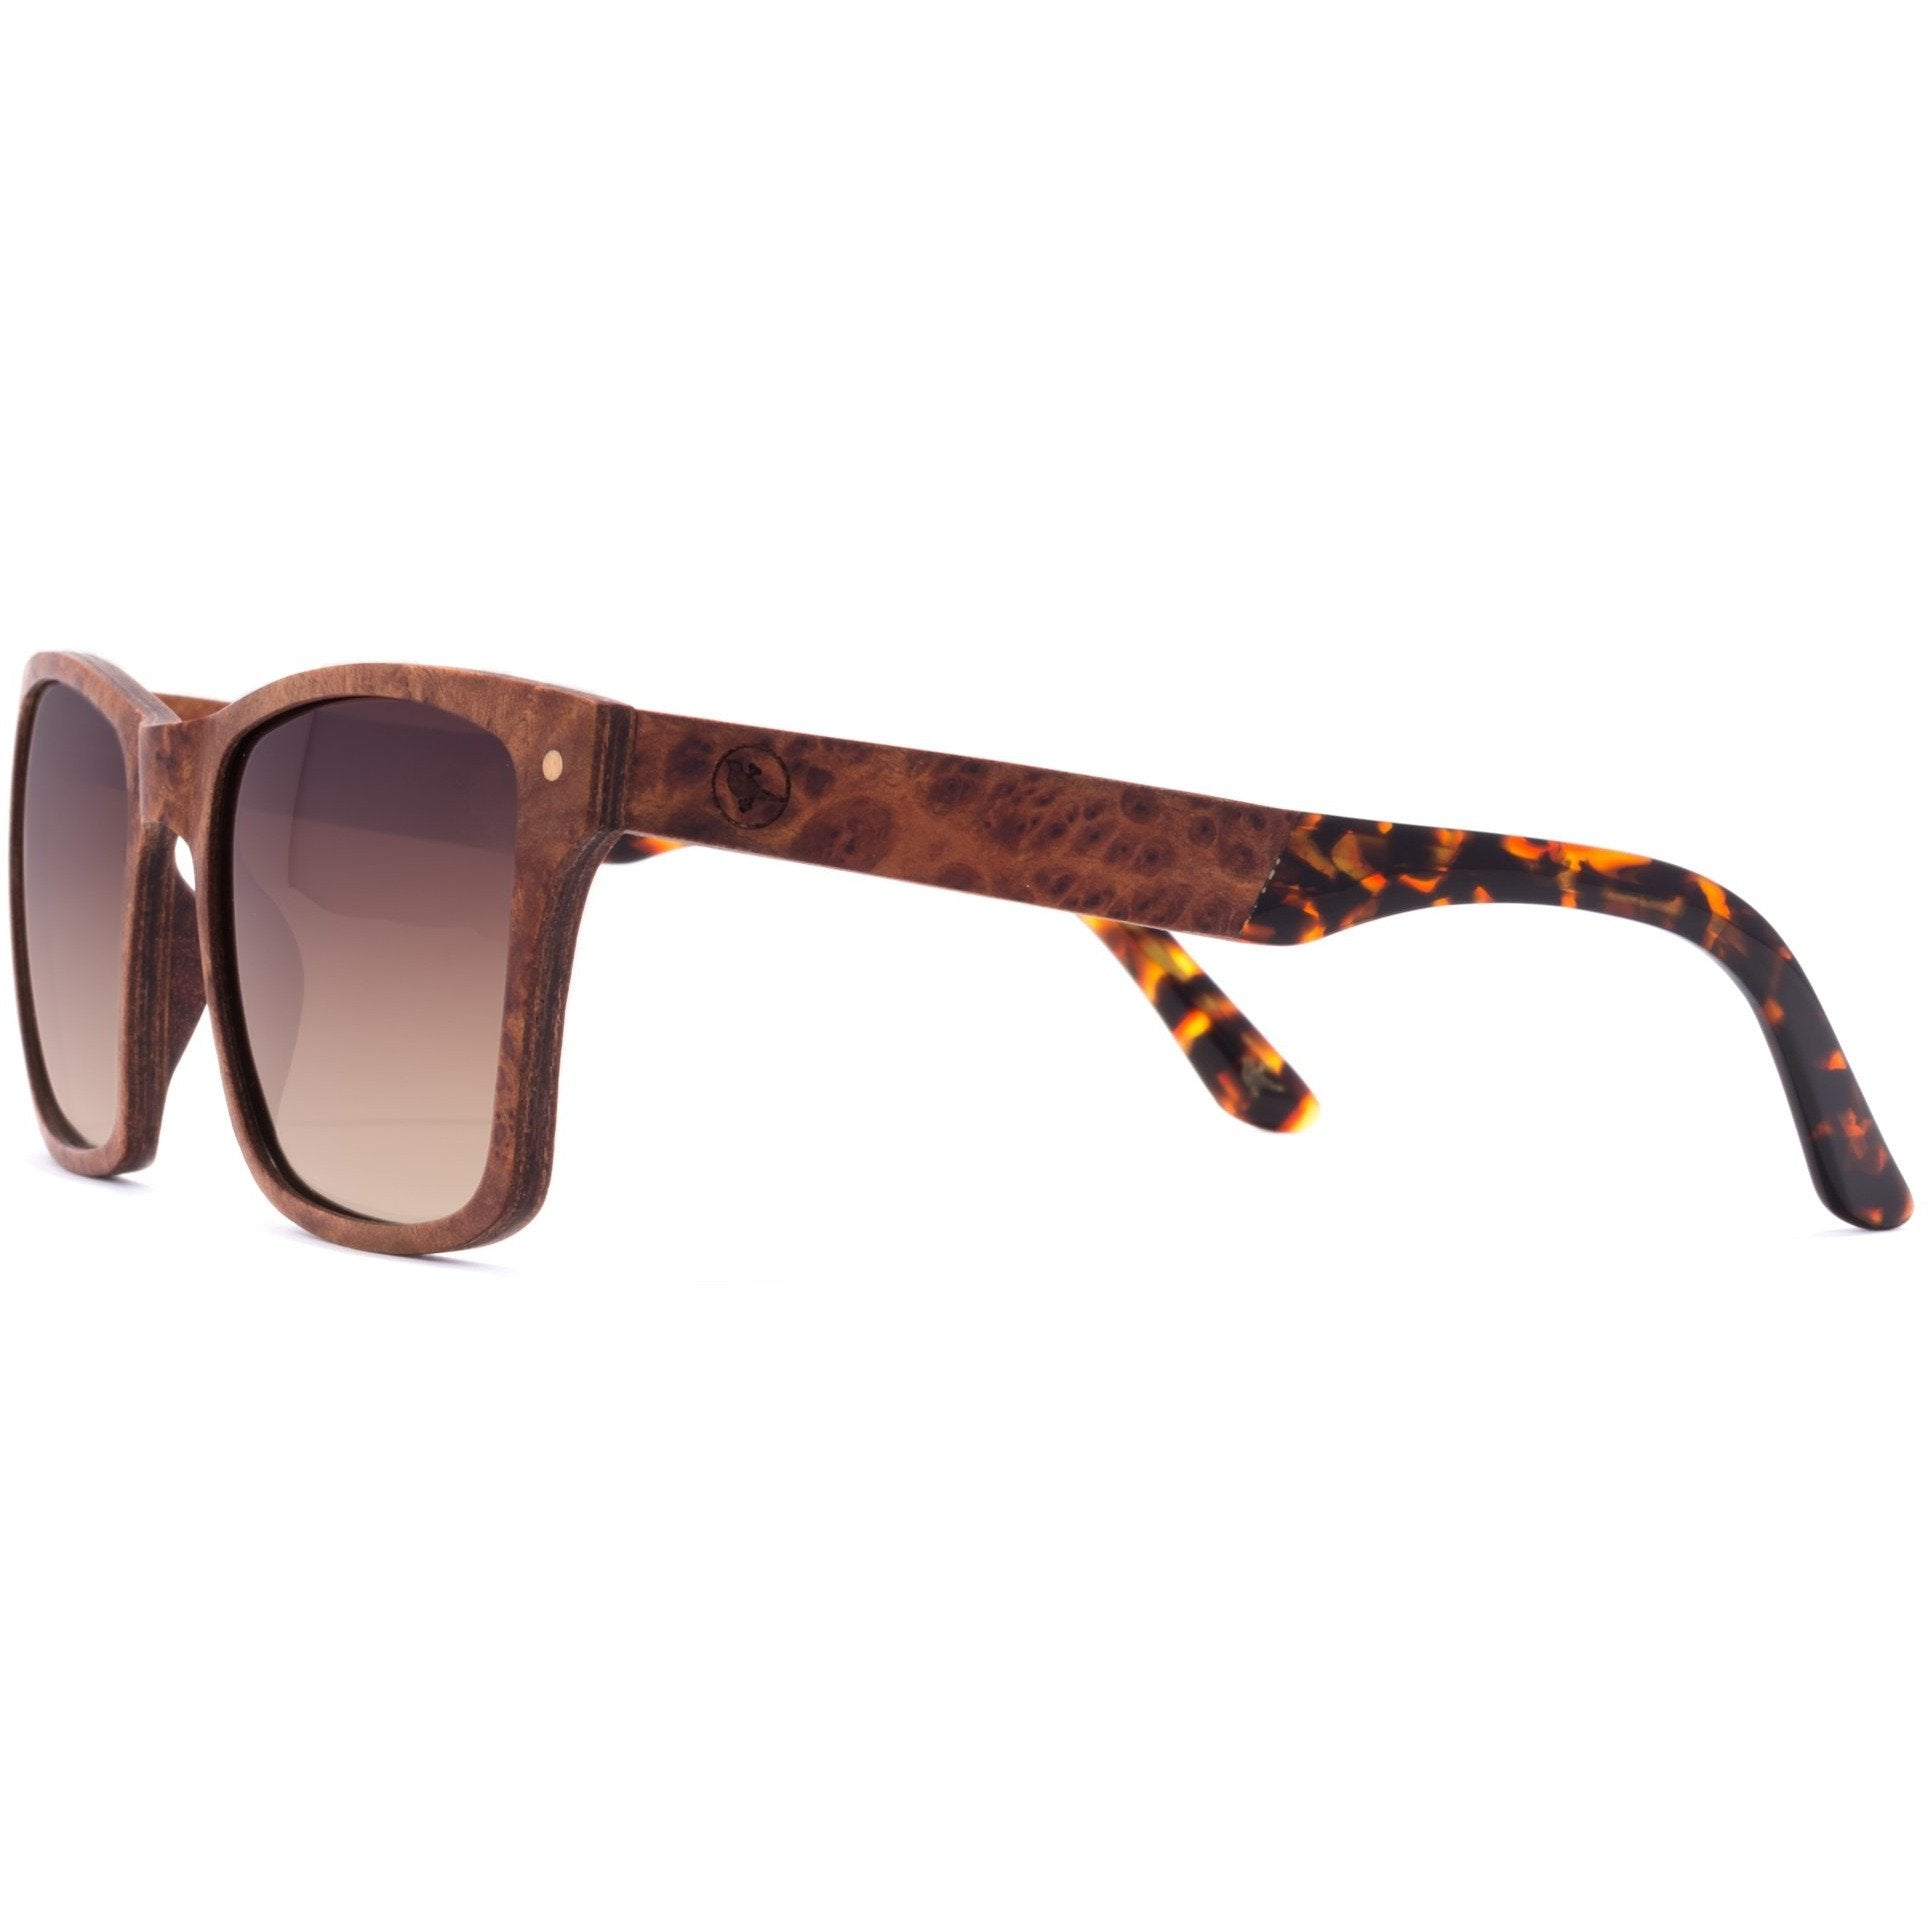 Sunglasses - Tamarack Wood